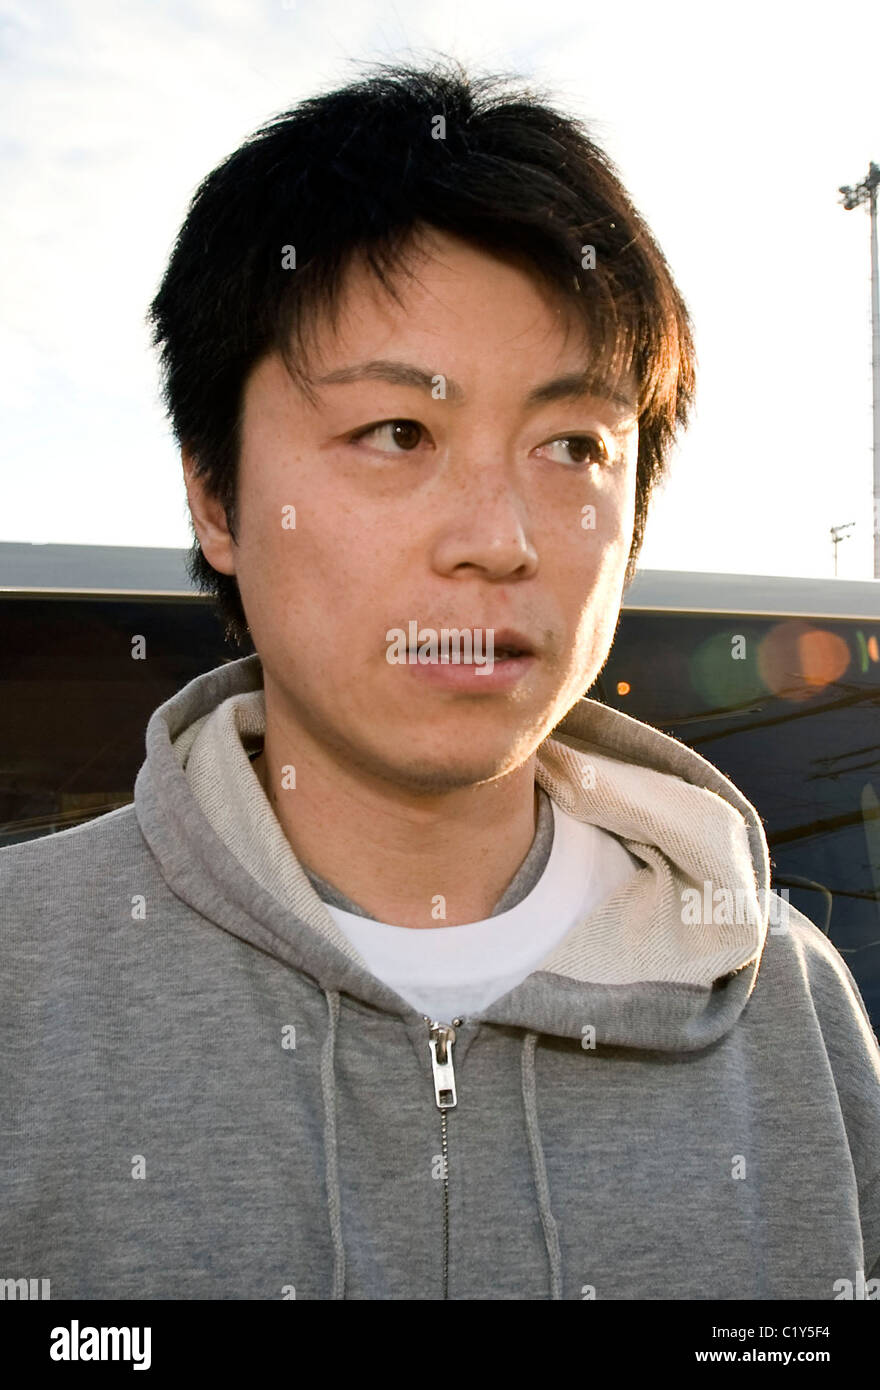 kira Tamura, a member of the so-called Fukushima 50 prepares to board the Kaiwomaru - Stock Image